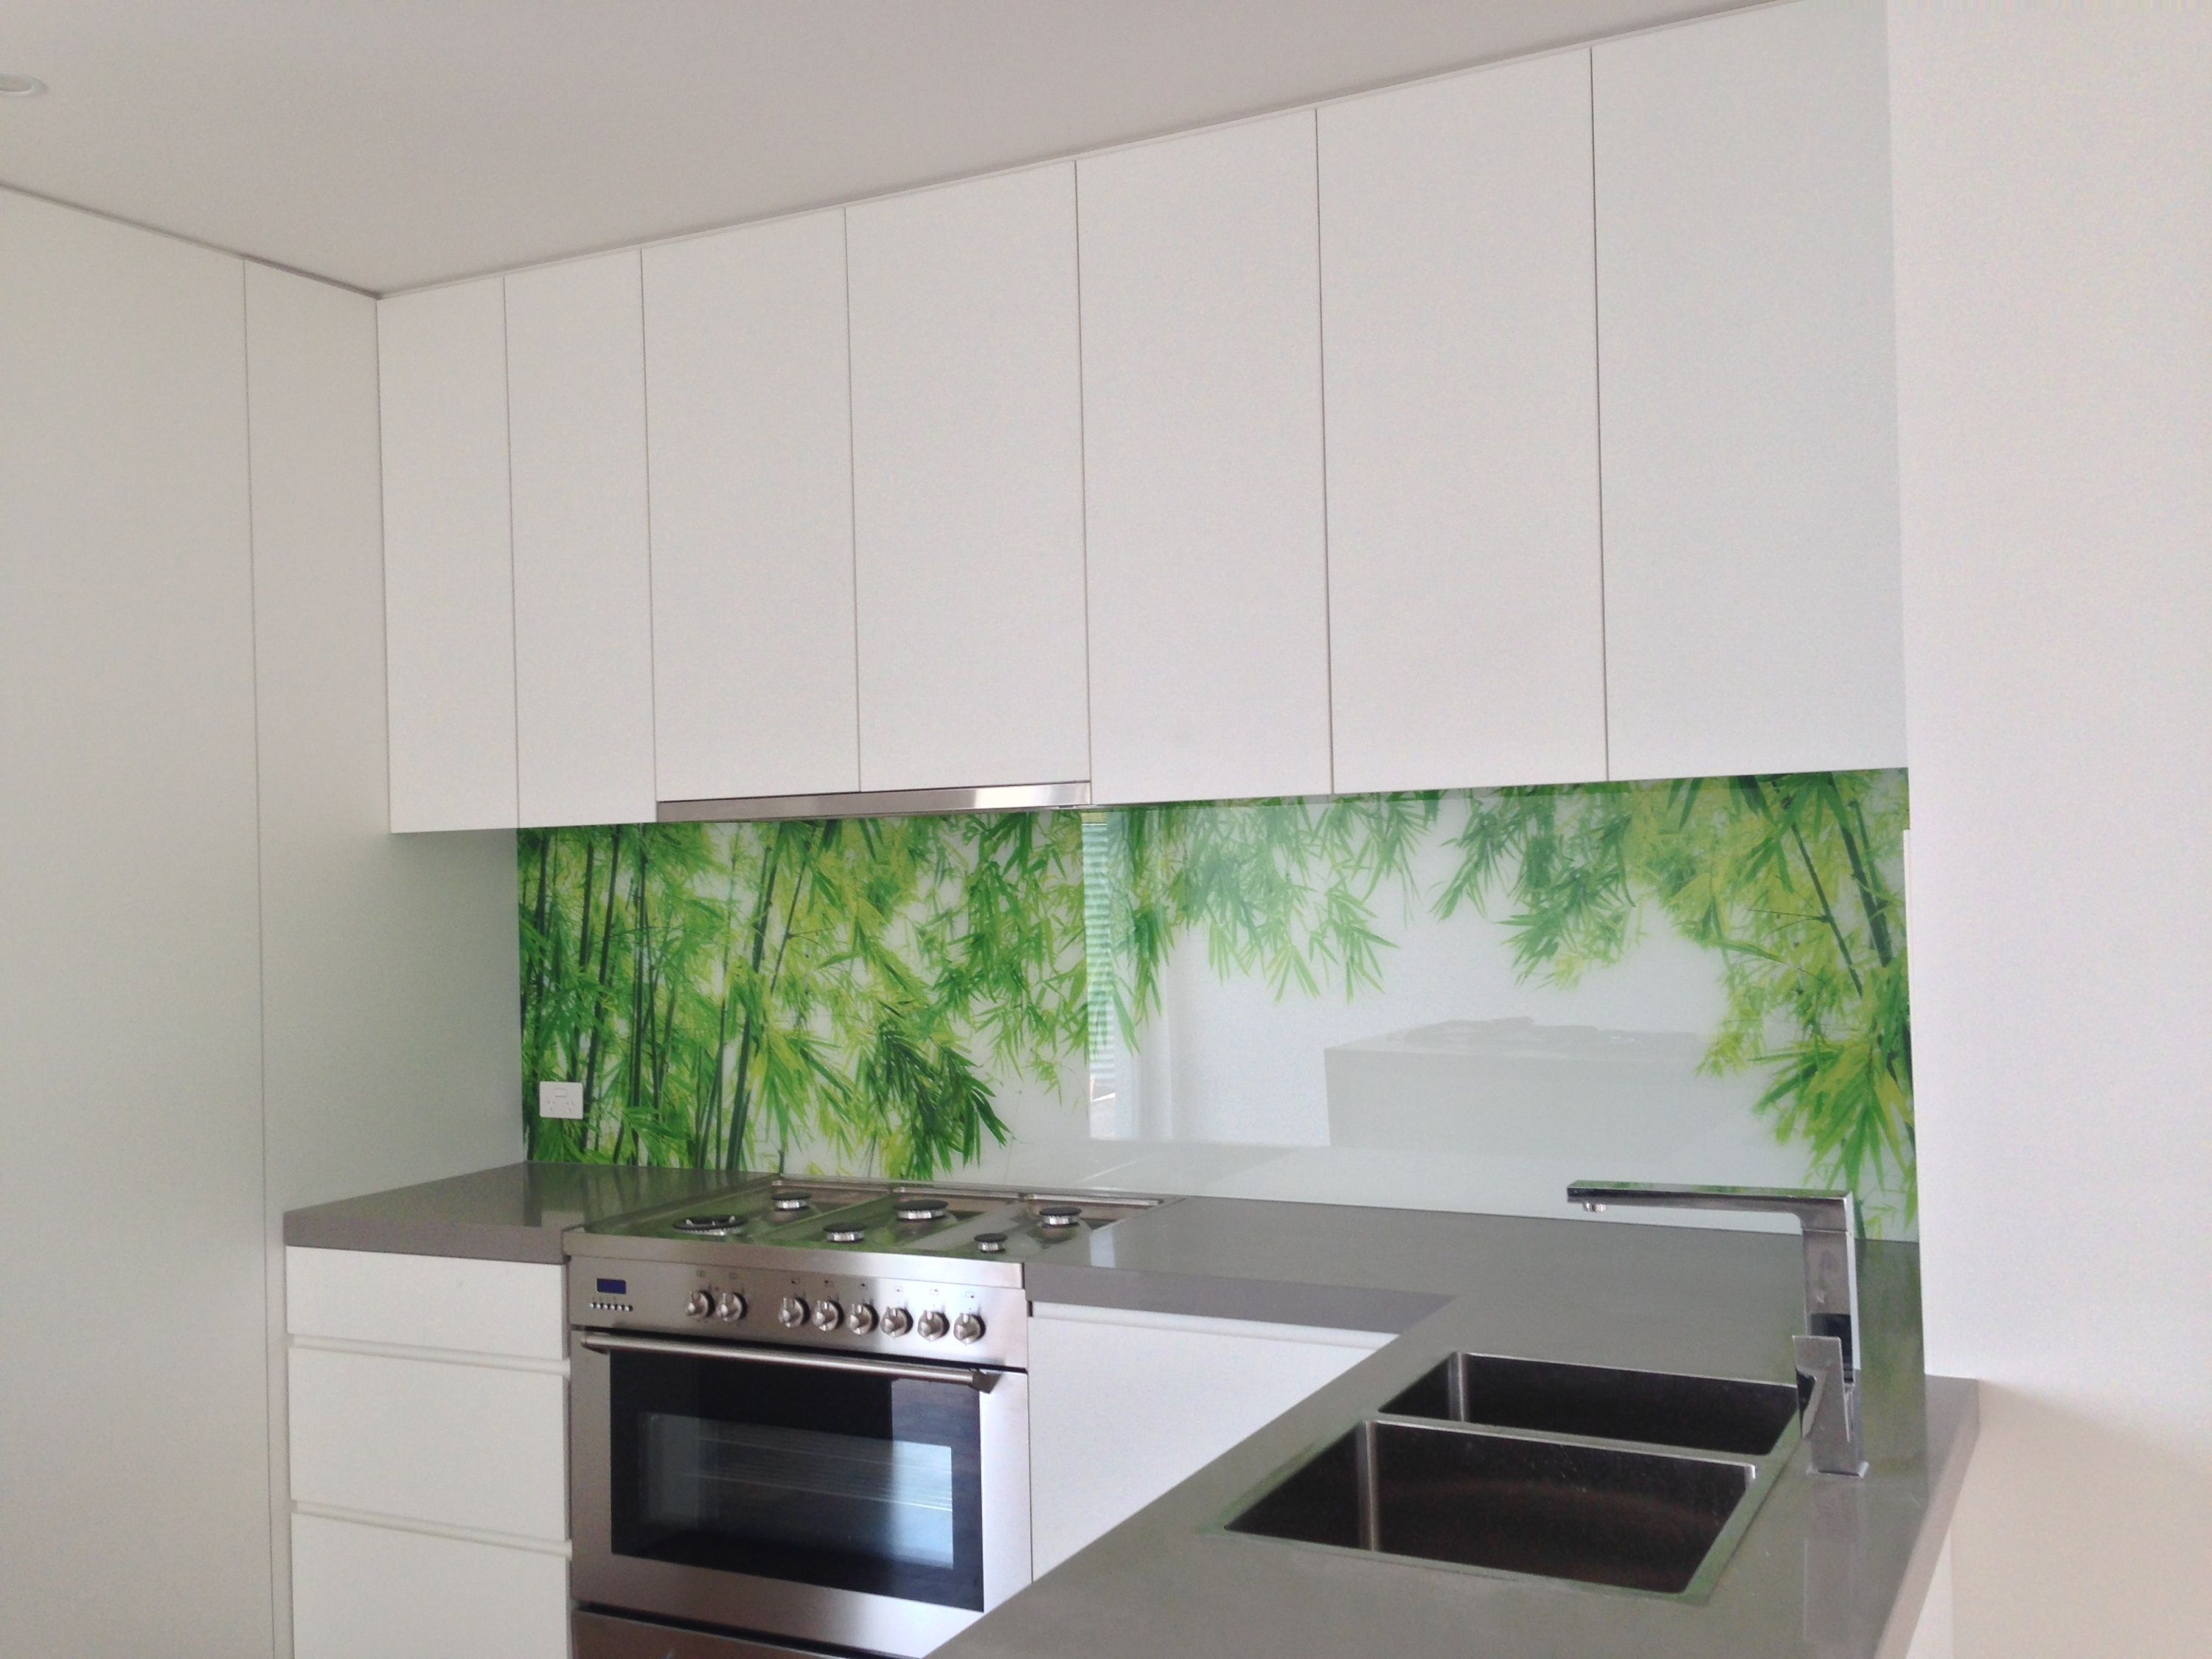 Digitally printed glass splashbacks from ultimate glass for Splashback tiles kitchen ideas